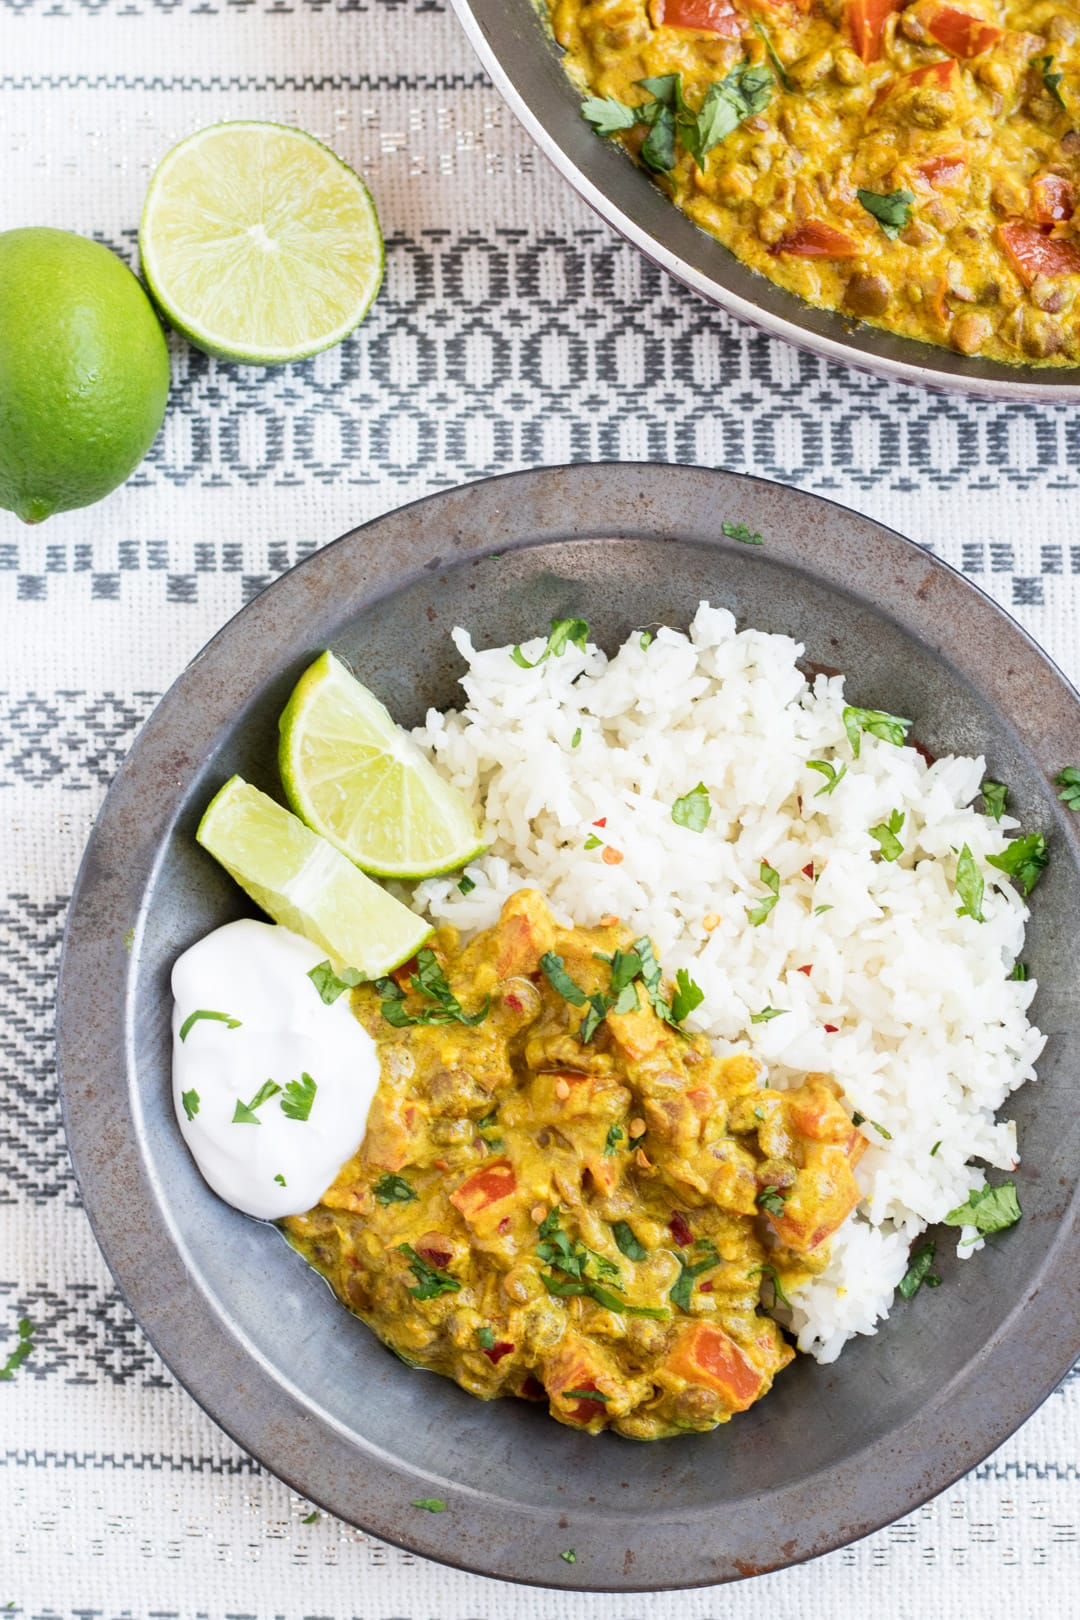 A metal bowl filled with low FODMAP lentil dal and basmati rice garnished with cilantro and served with lime wedges and a dollop of coconut yogurt. Limes and a skillet filled with dal in the background.